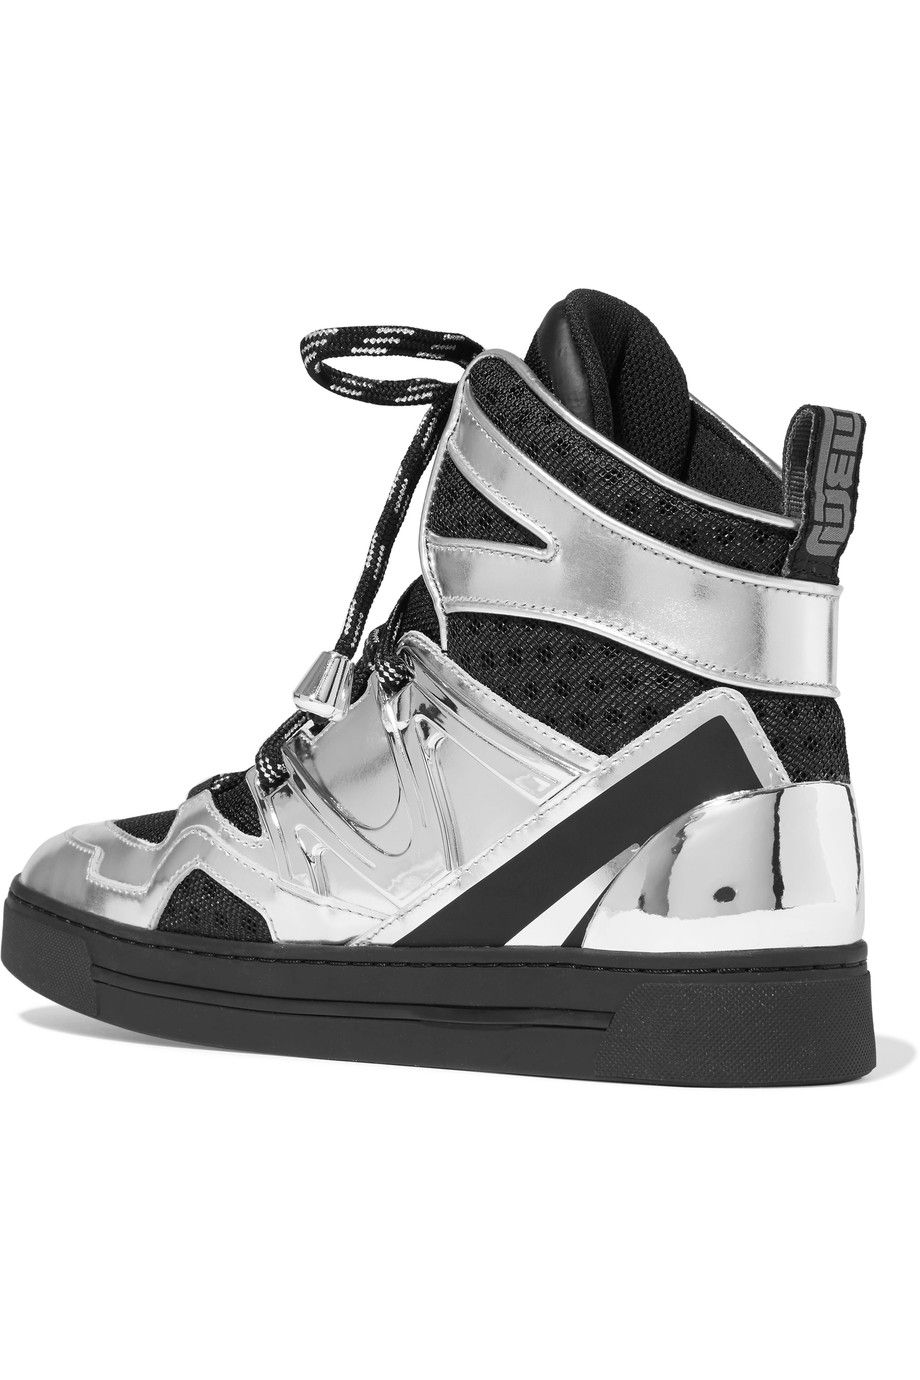 Shop on-sale Marc by Marc Jacobs Ninja mesh-trimmed metallic leather high-top  sneakers. Browse other discount designer Sneakers & more on The Most ...